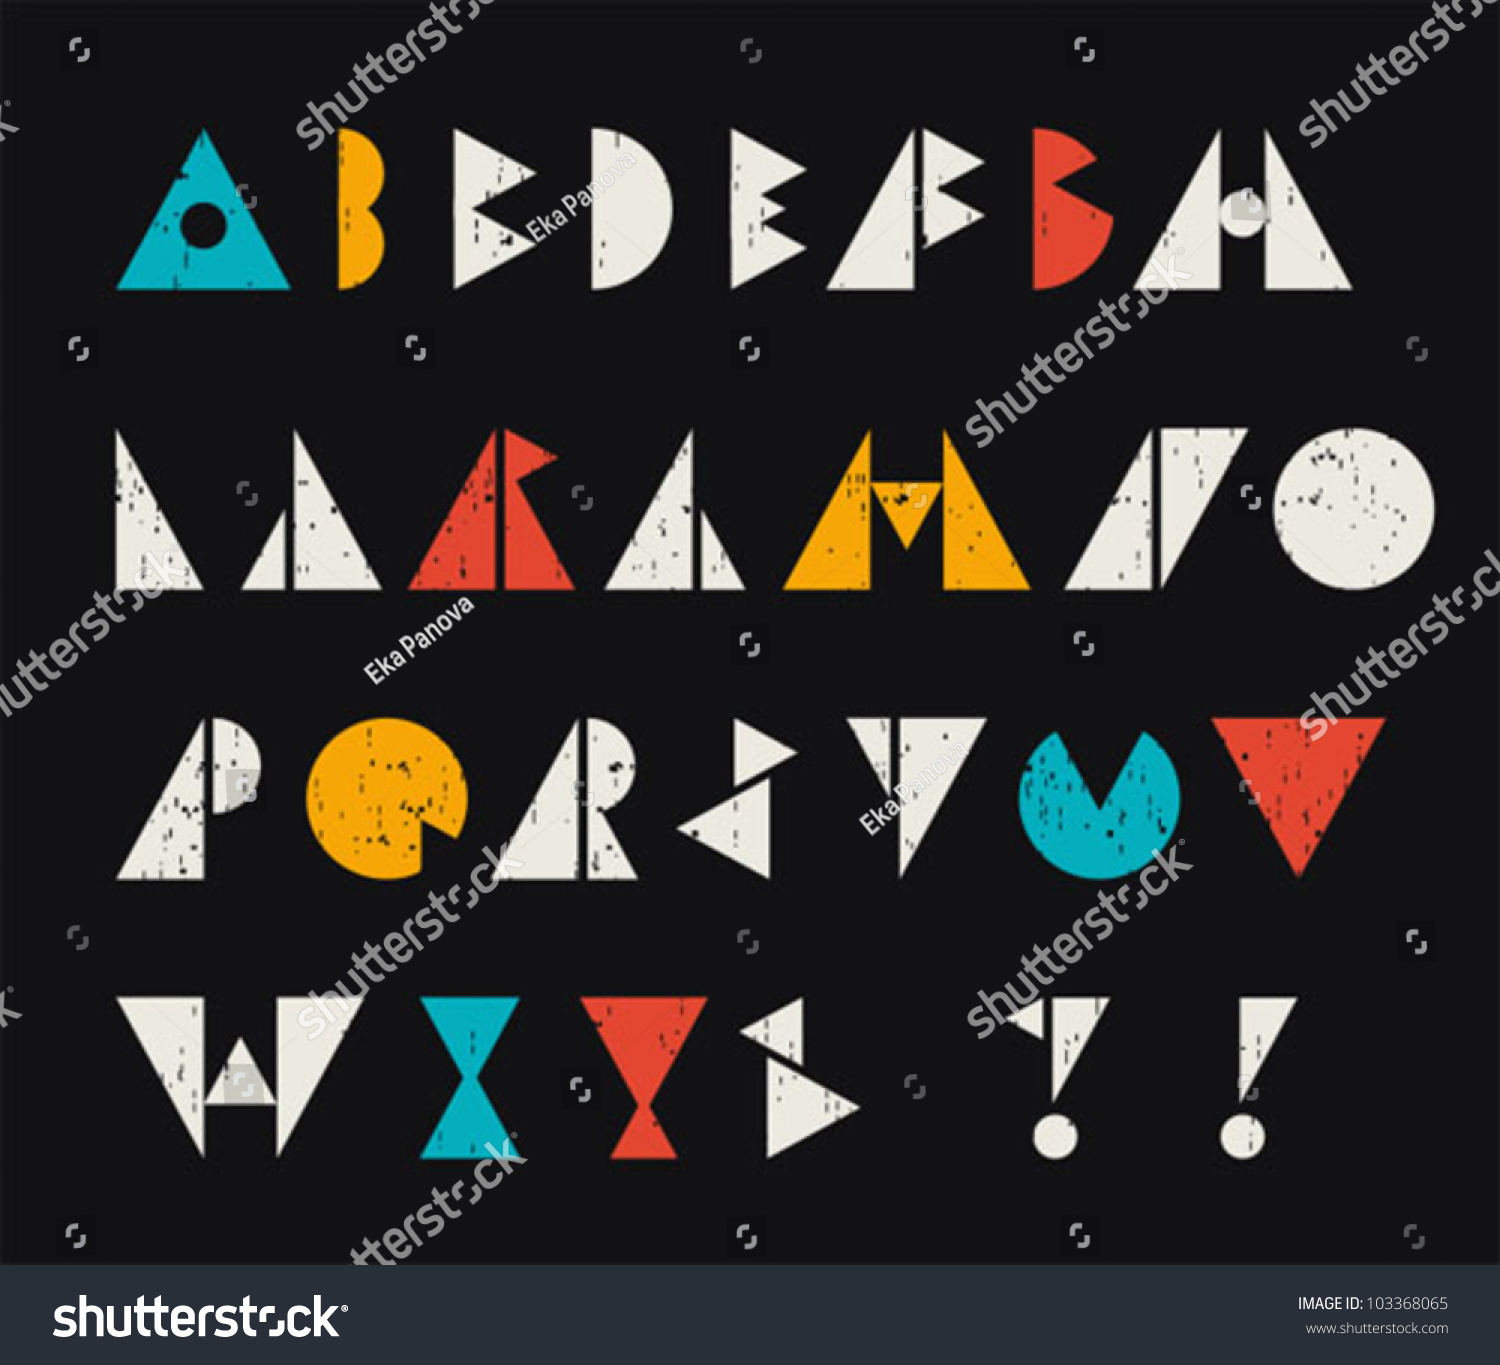 Abstract alphabet letters retro style cool stock vector 103368065 abstract alphabet letters in retro style cool vector illustration biocorpaavc Images